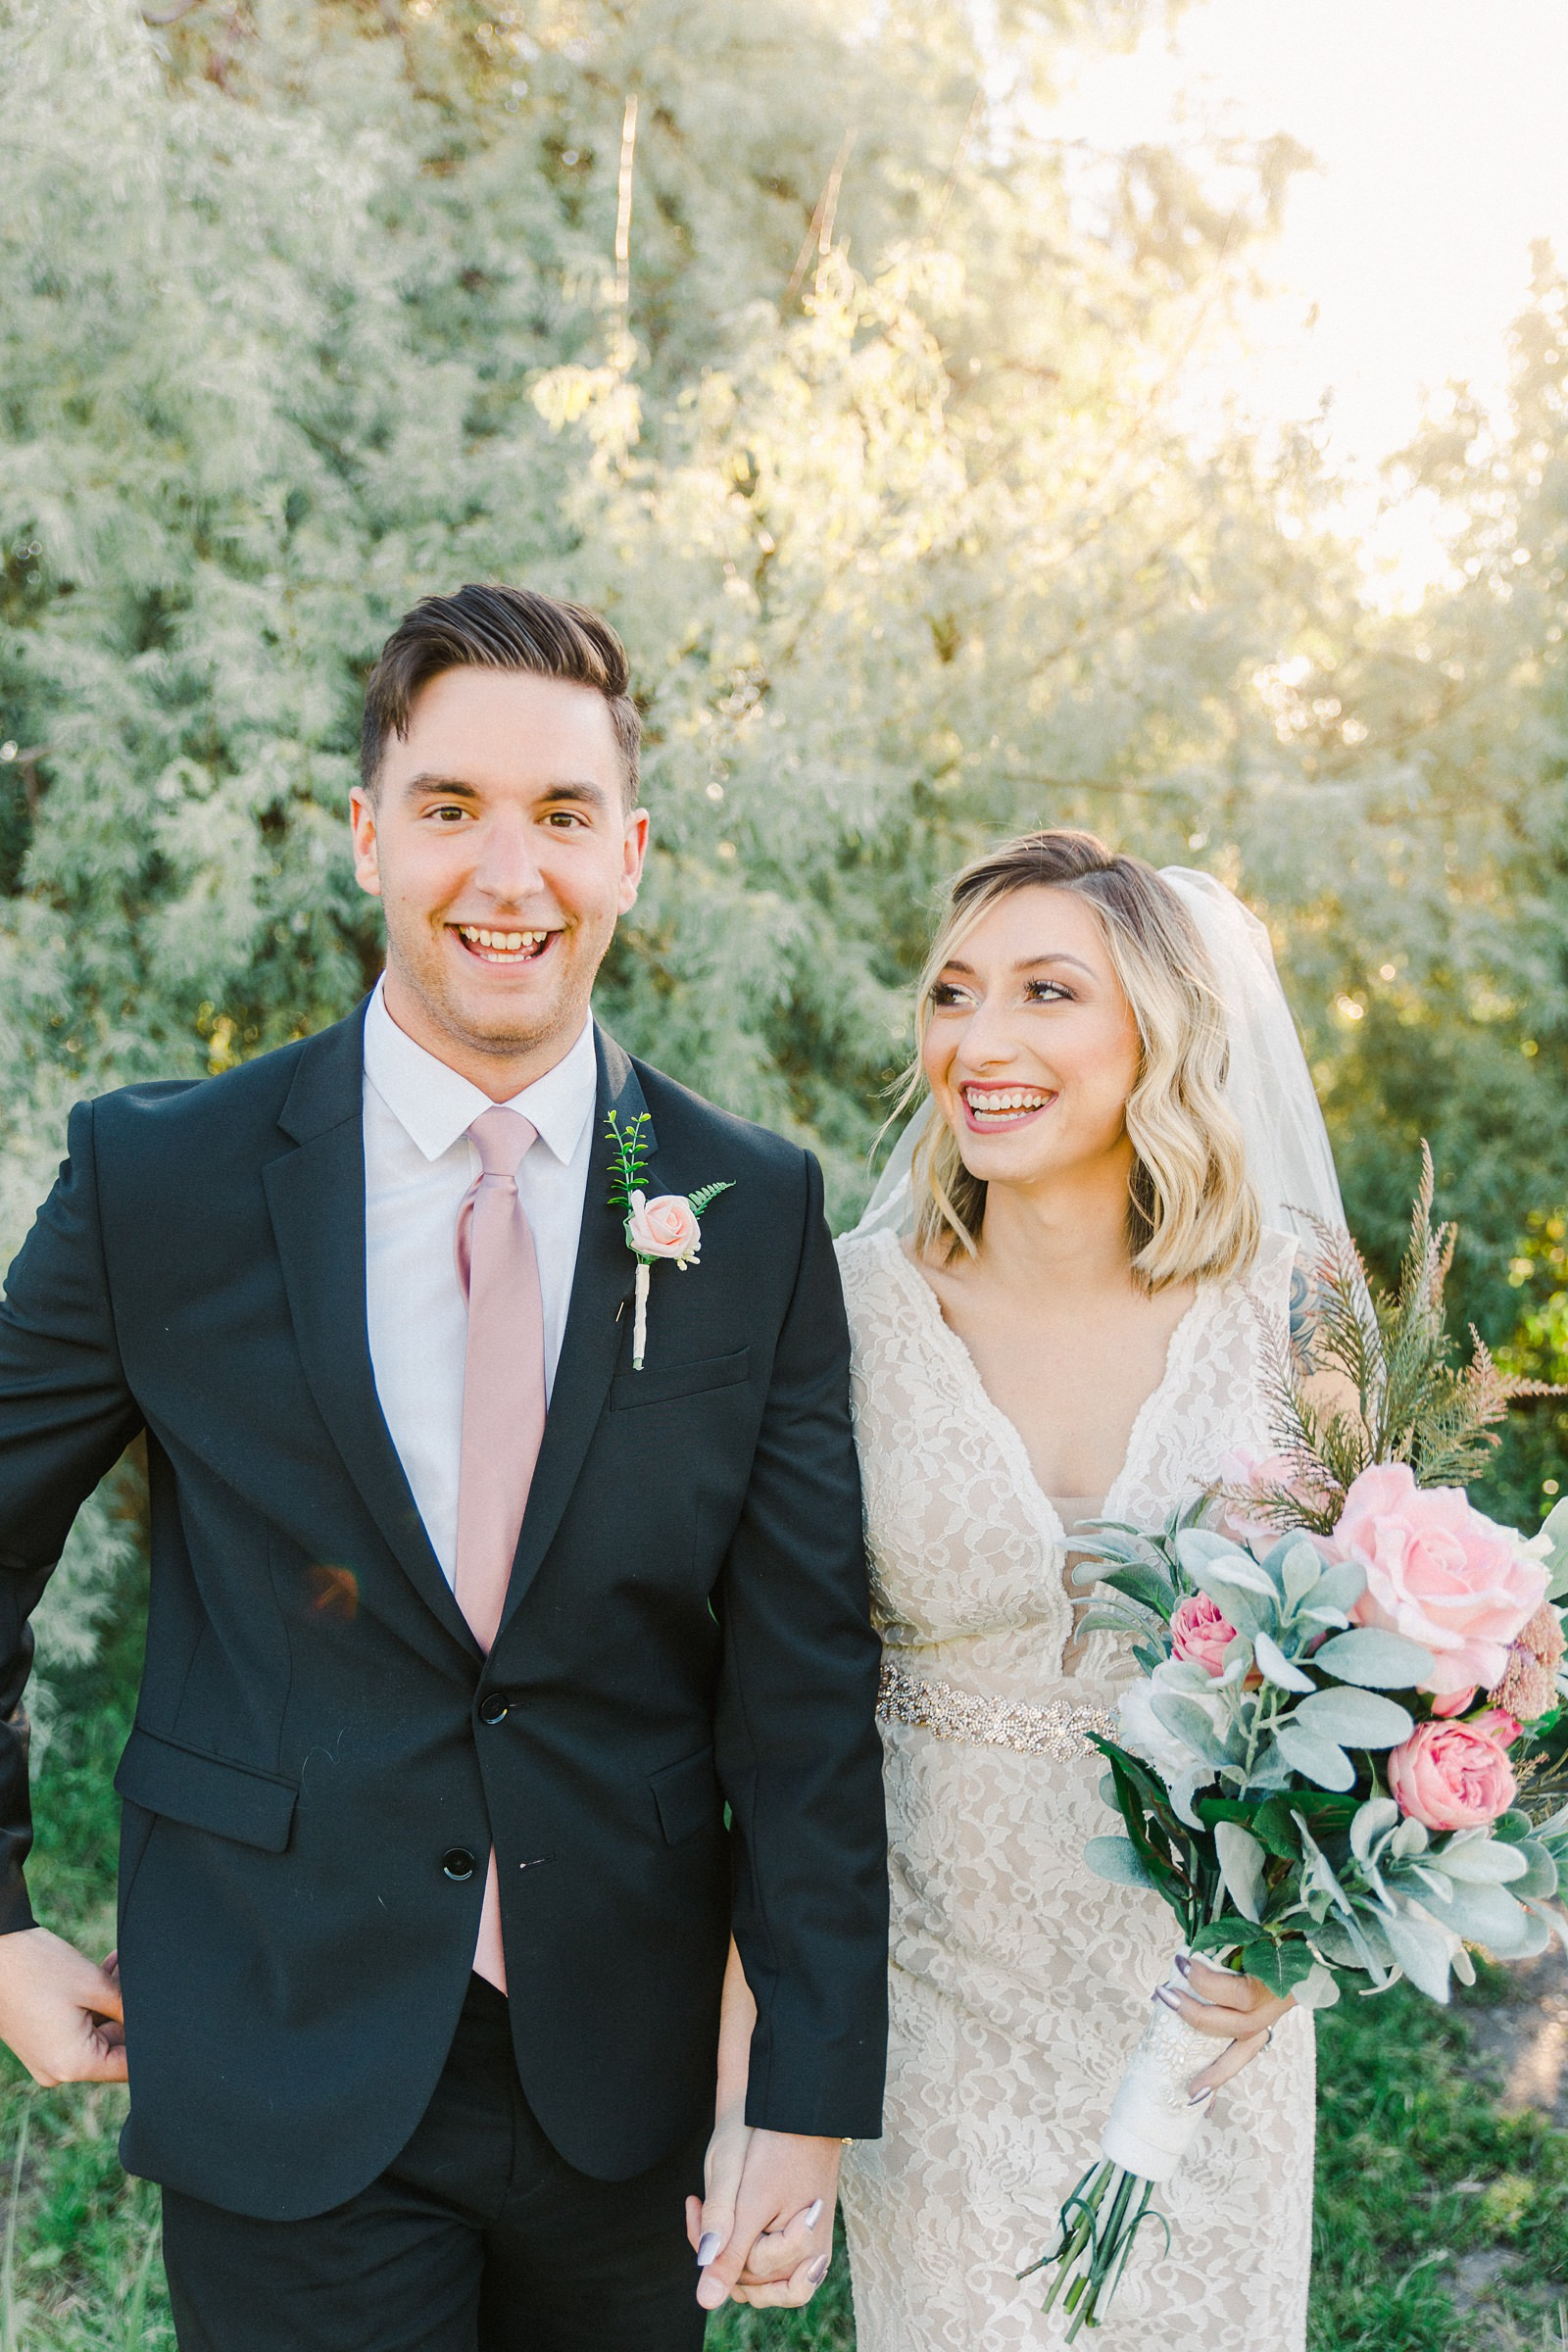 Salt Lake City Utah Bridal Wedding Photography, Tunnel Springs Park, bride and groom, pink and white wedding flowers bouquet